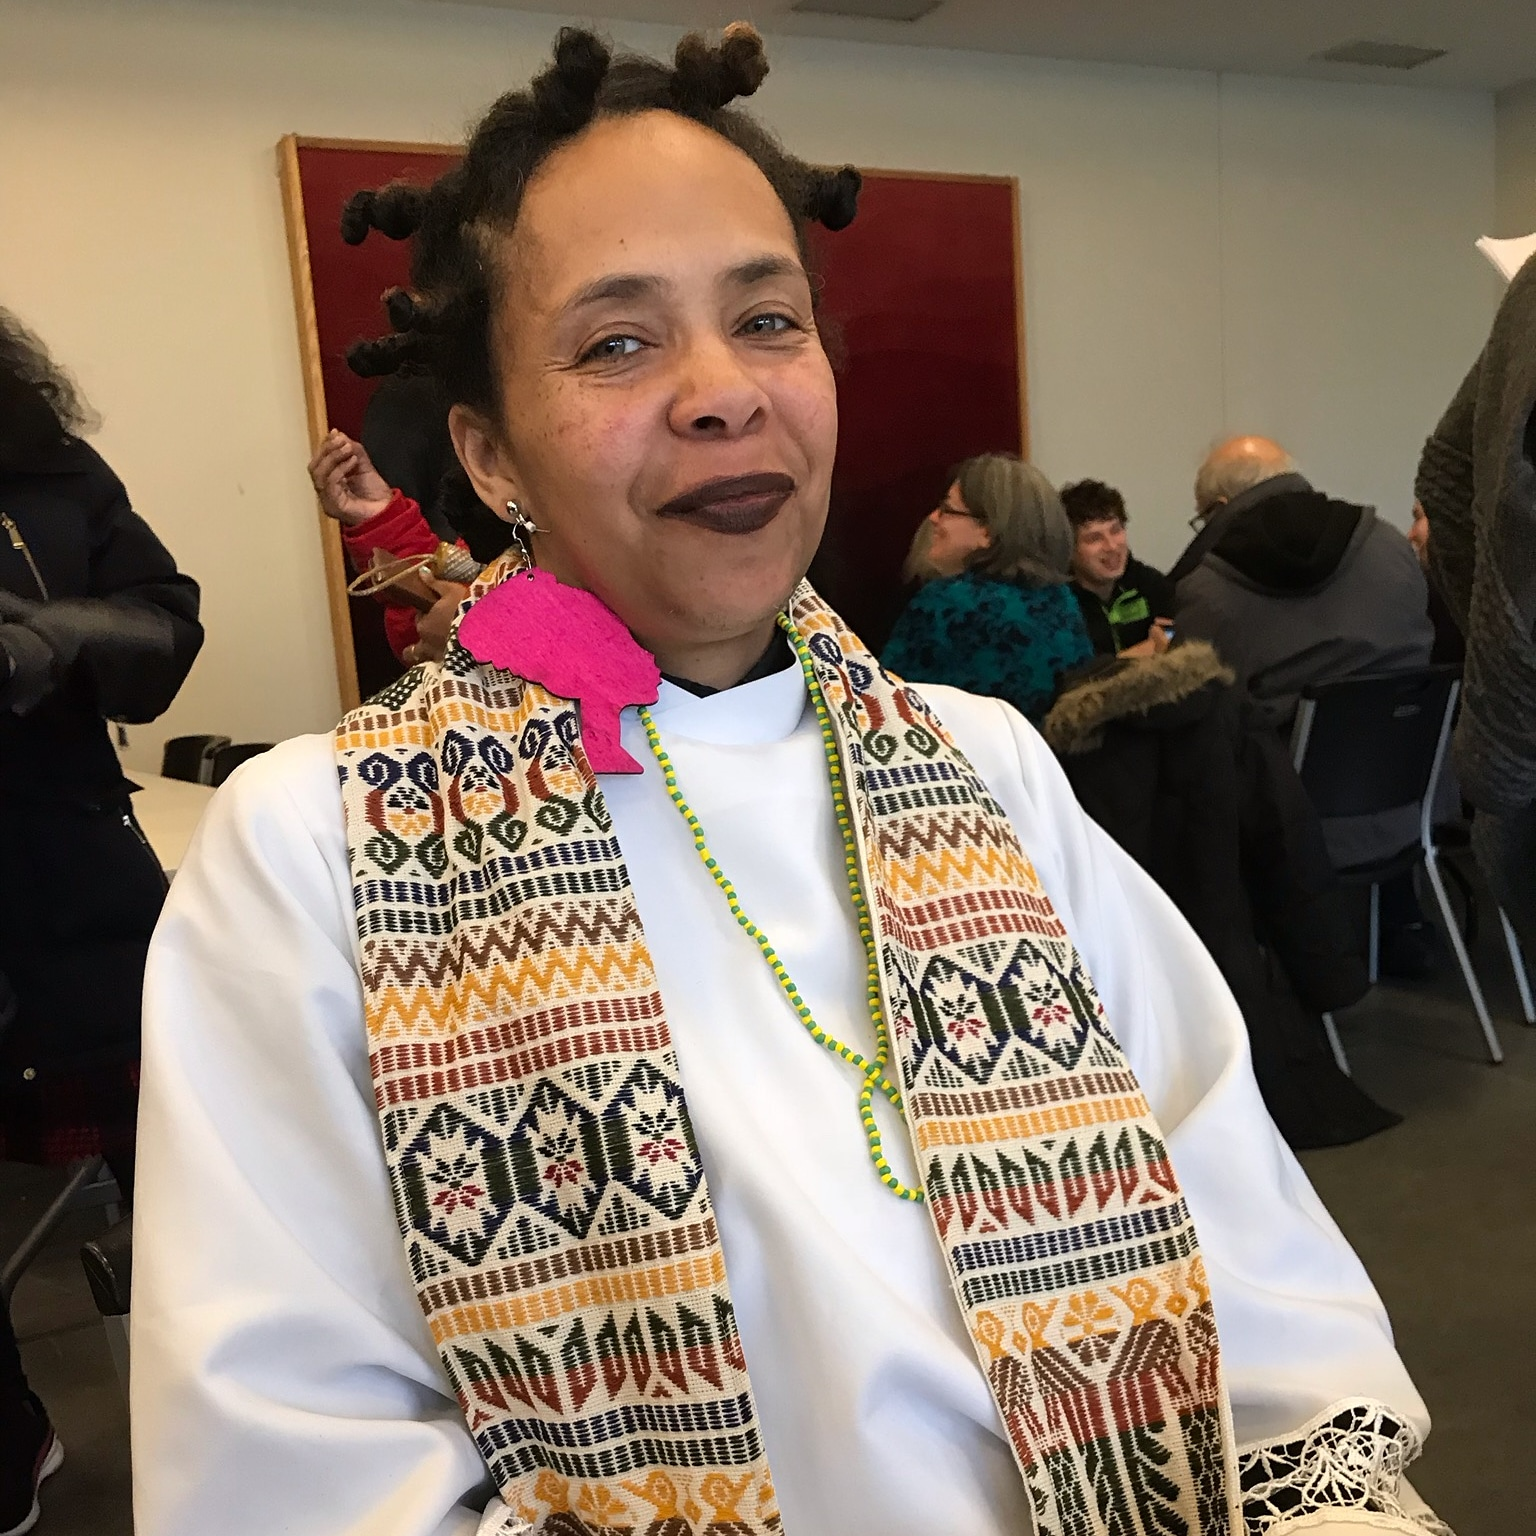 """What is important to me is that instead of just succeeding in the end game of simply becoming a Lutheran Pastor, the end game as one of my Elder's stated so clearly is serving and transforming this world, not only now but beyond. My voice needs to be heard and understood as the continuing song of my Ancestors, who have charged me with the responsibility to continue to fight against inequality and violence.""  The Rev. Kwame Pitts, Body and Soul UChicago Campus Ministry's Pastor"